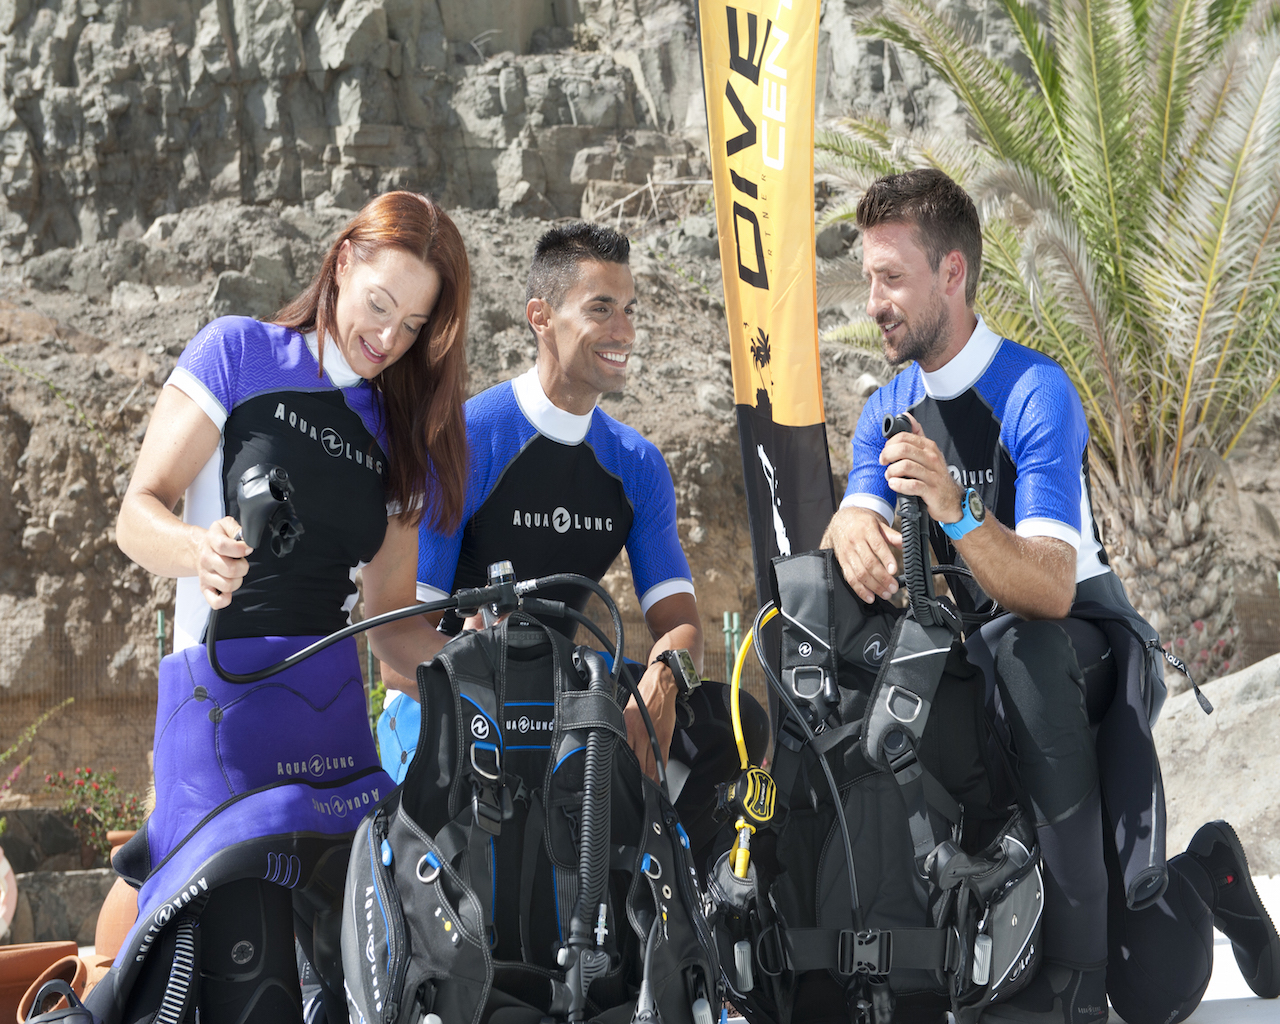 ADVANCE OPEN WATER DIVE COURSE